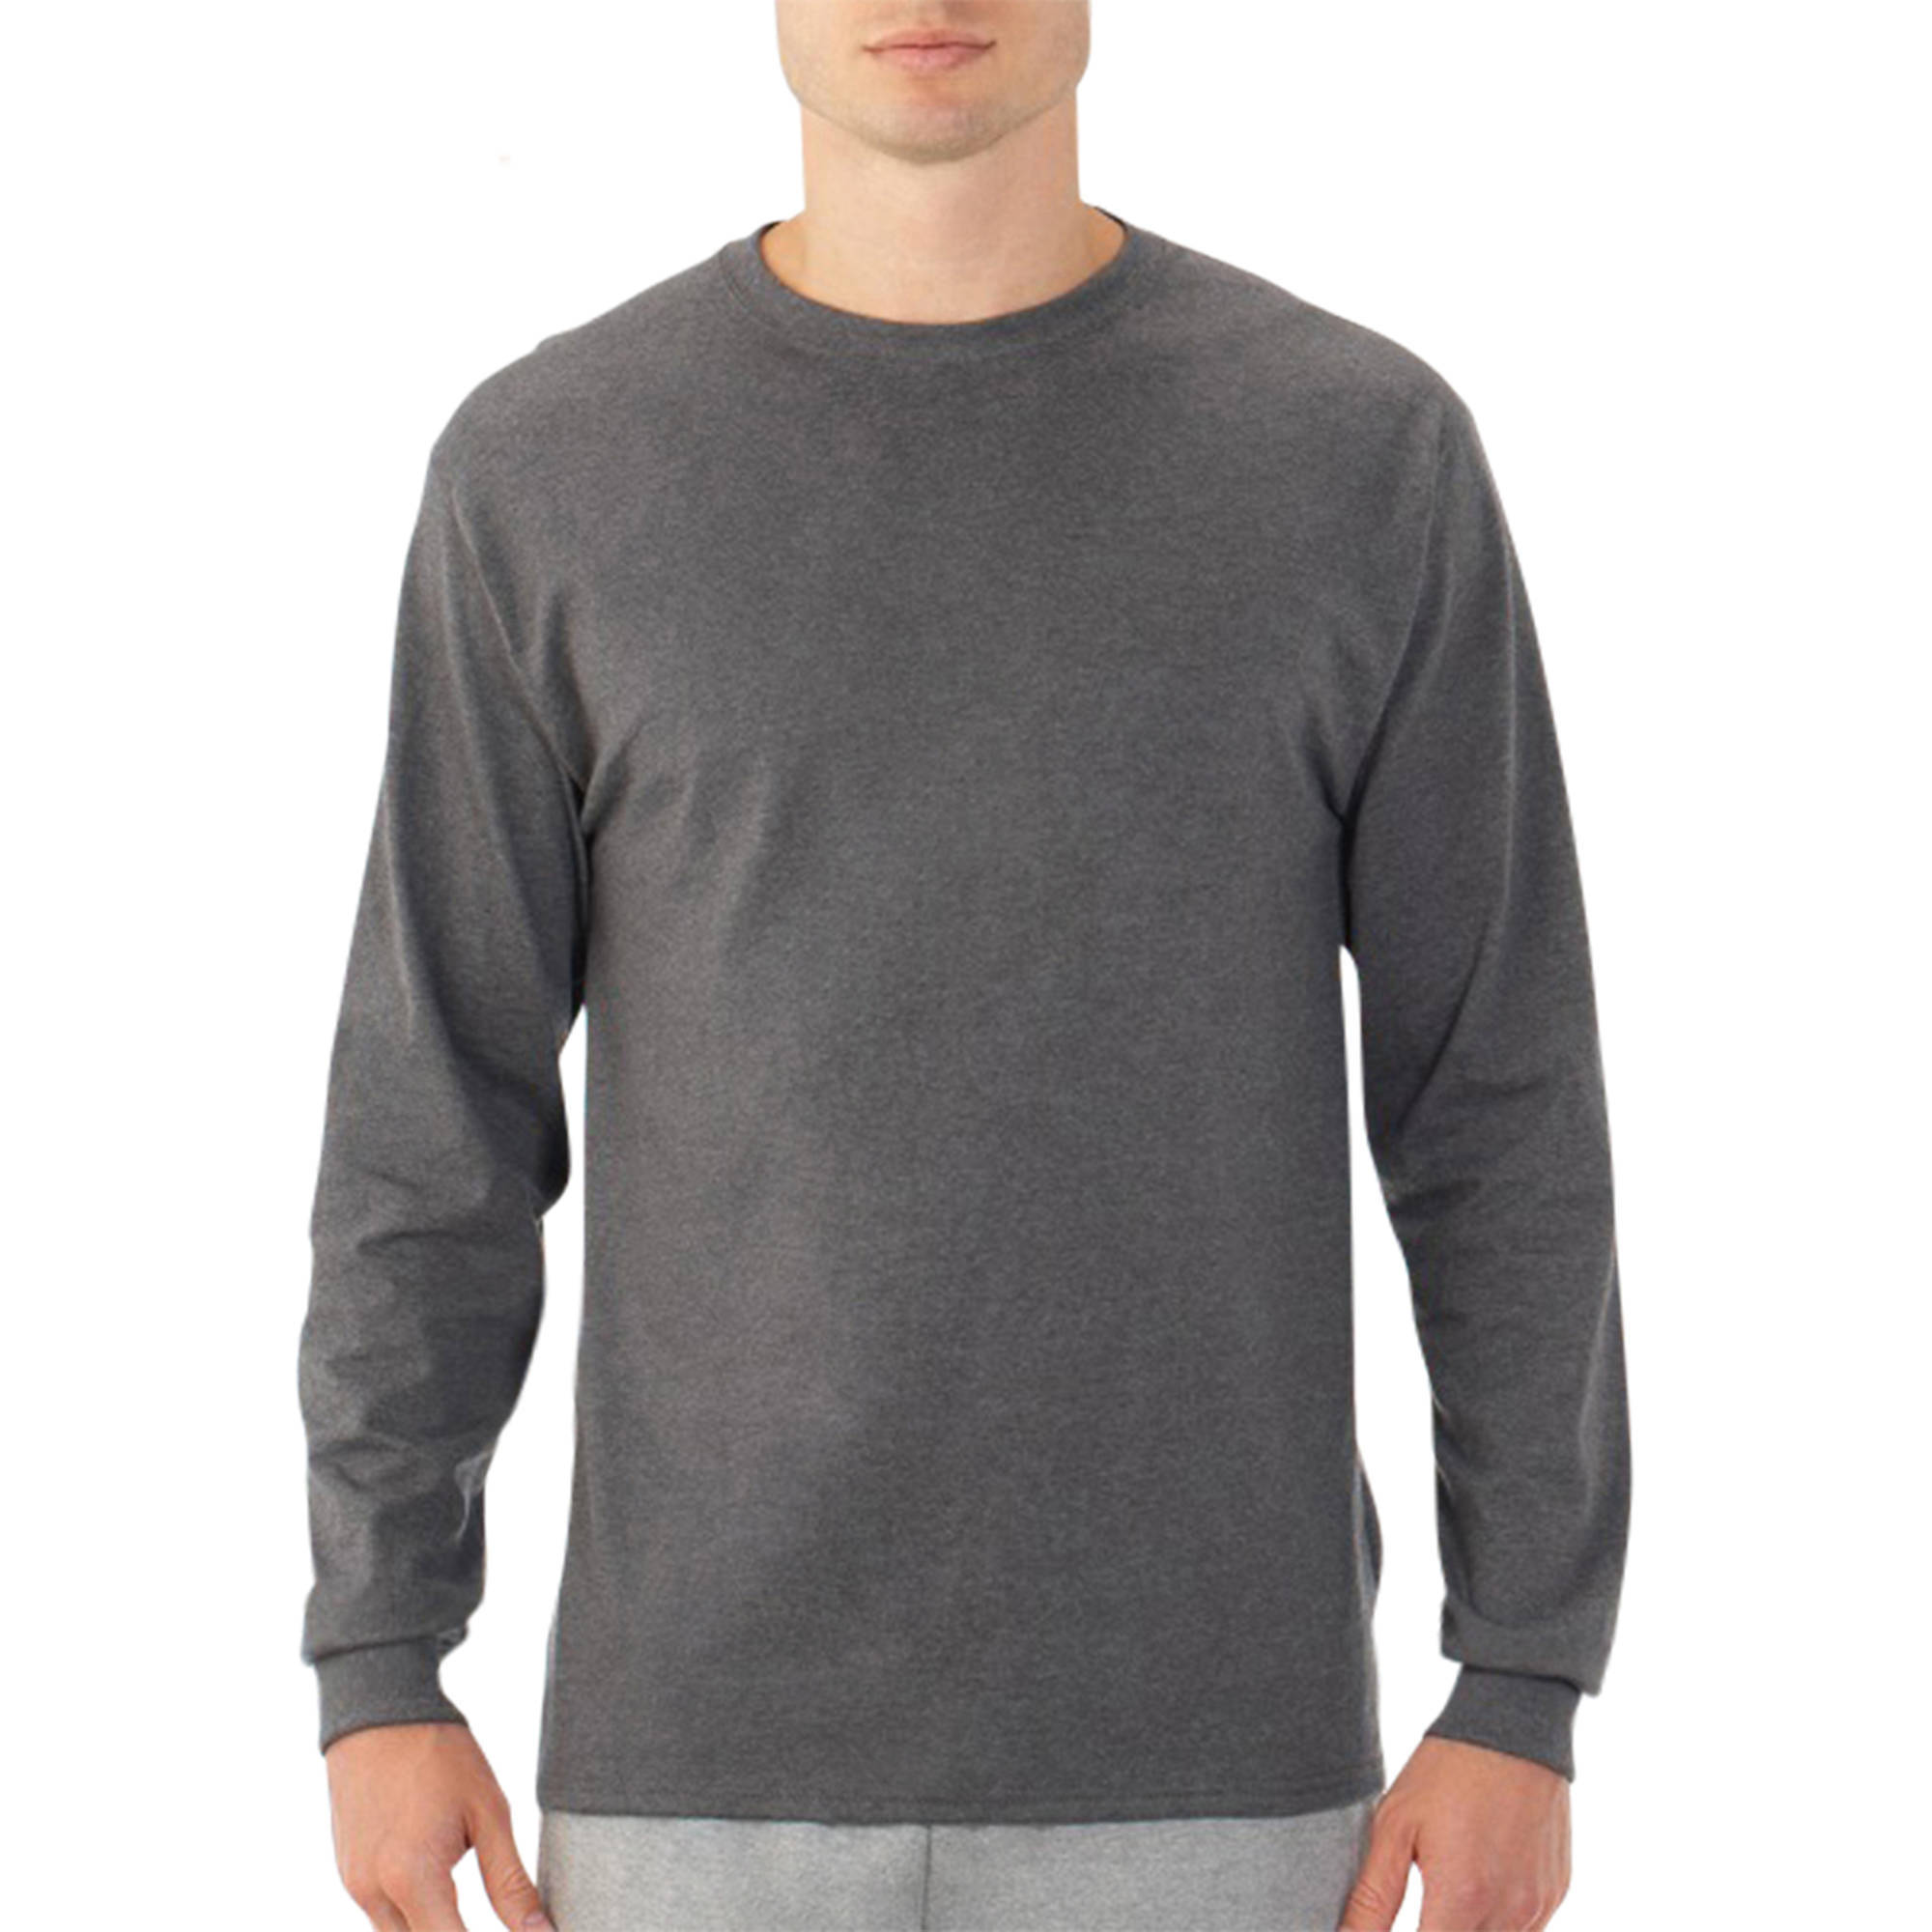 New! Fruit of the Loom Big Men's Long Sleeve Crew Tee